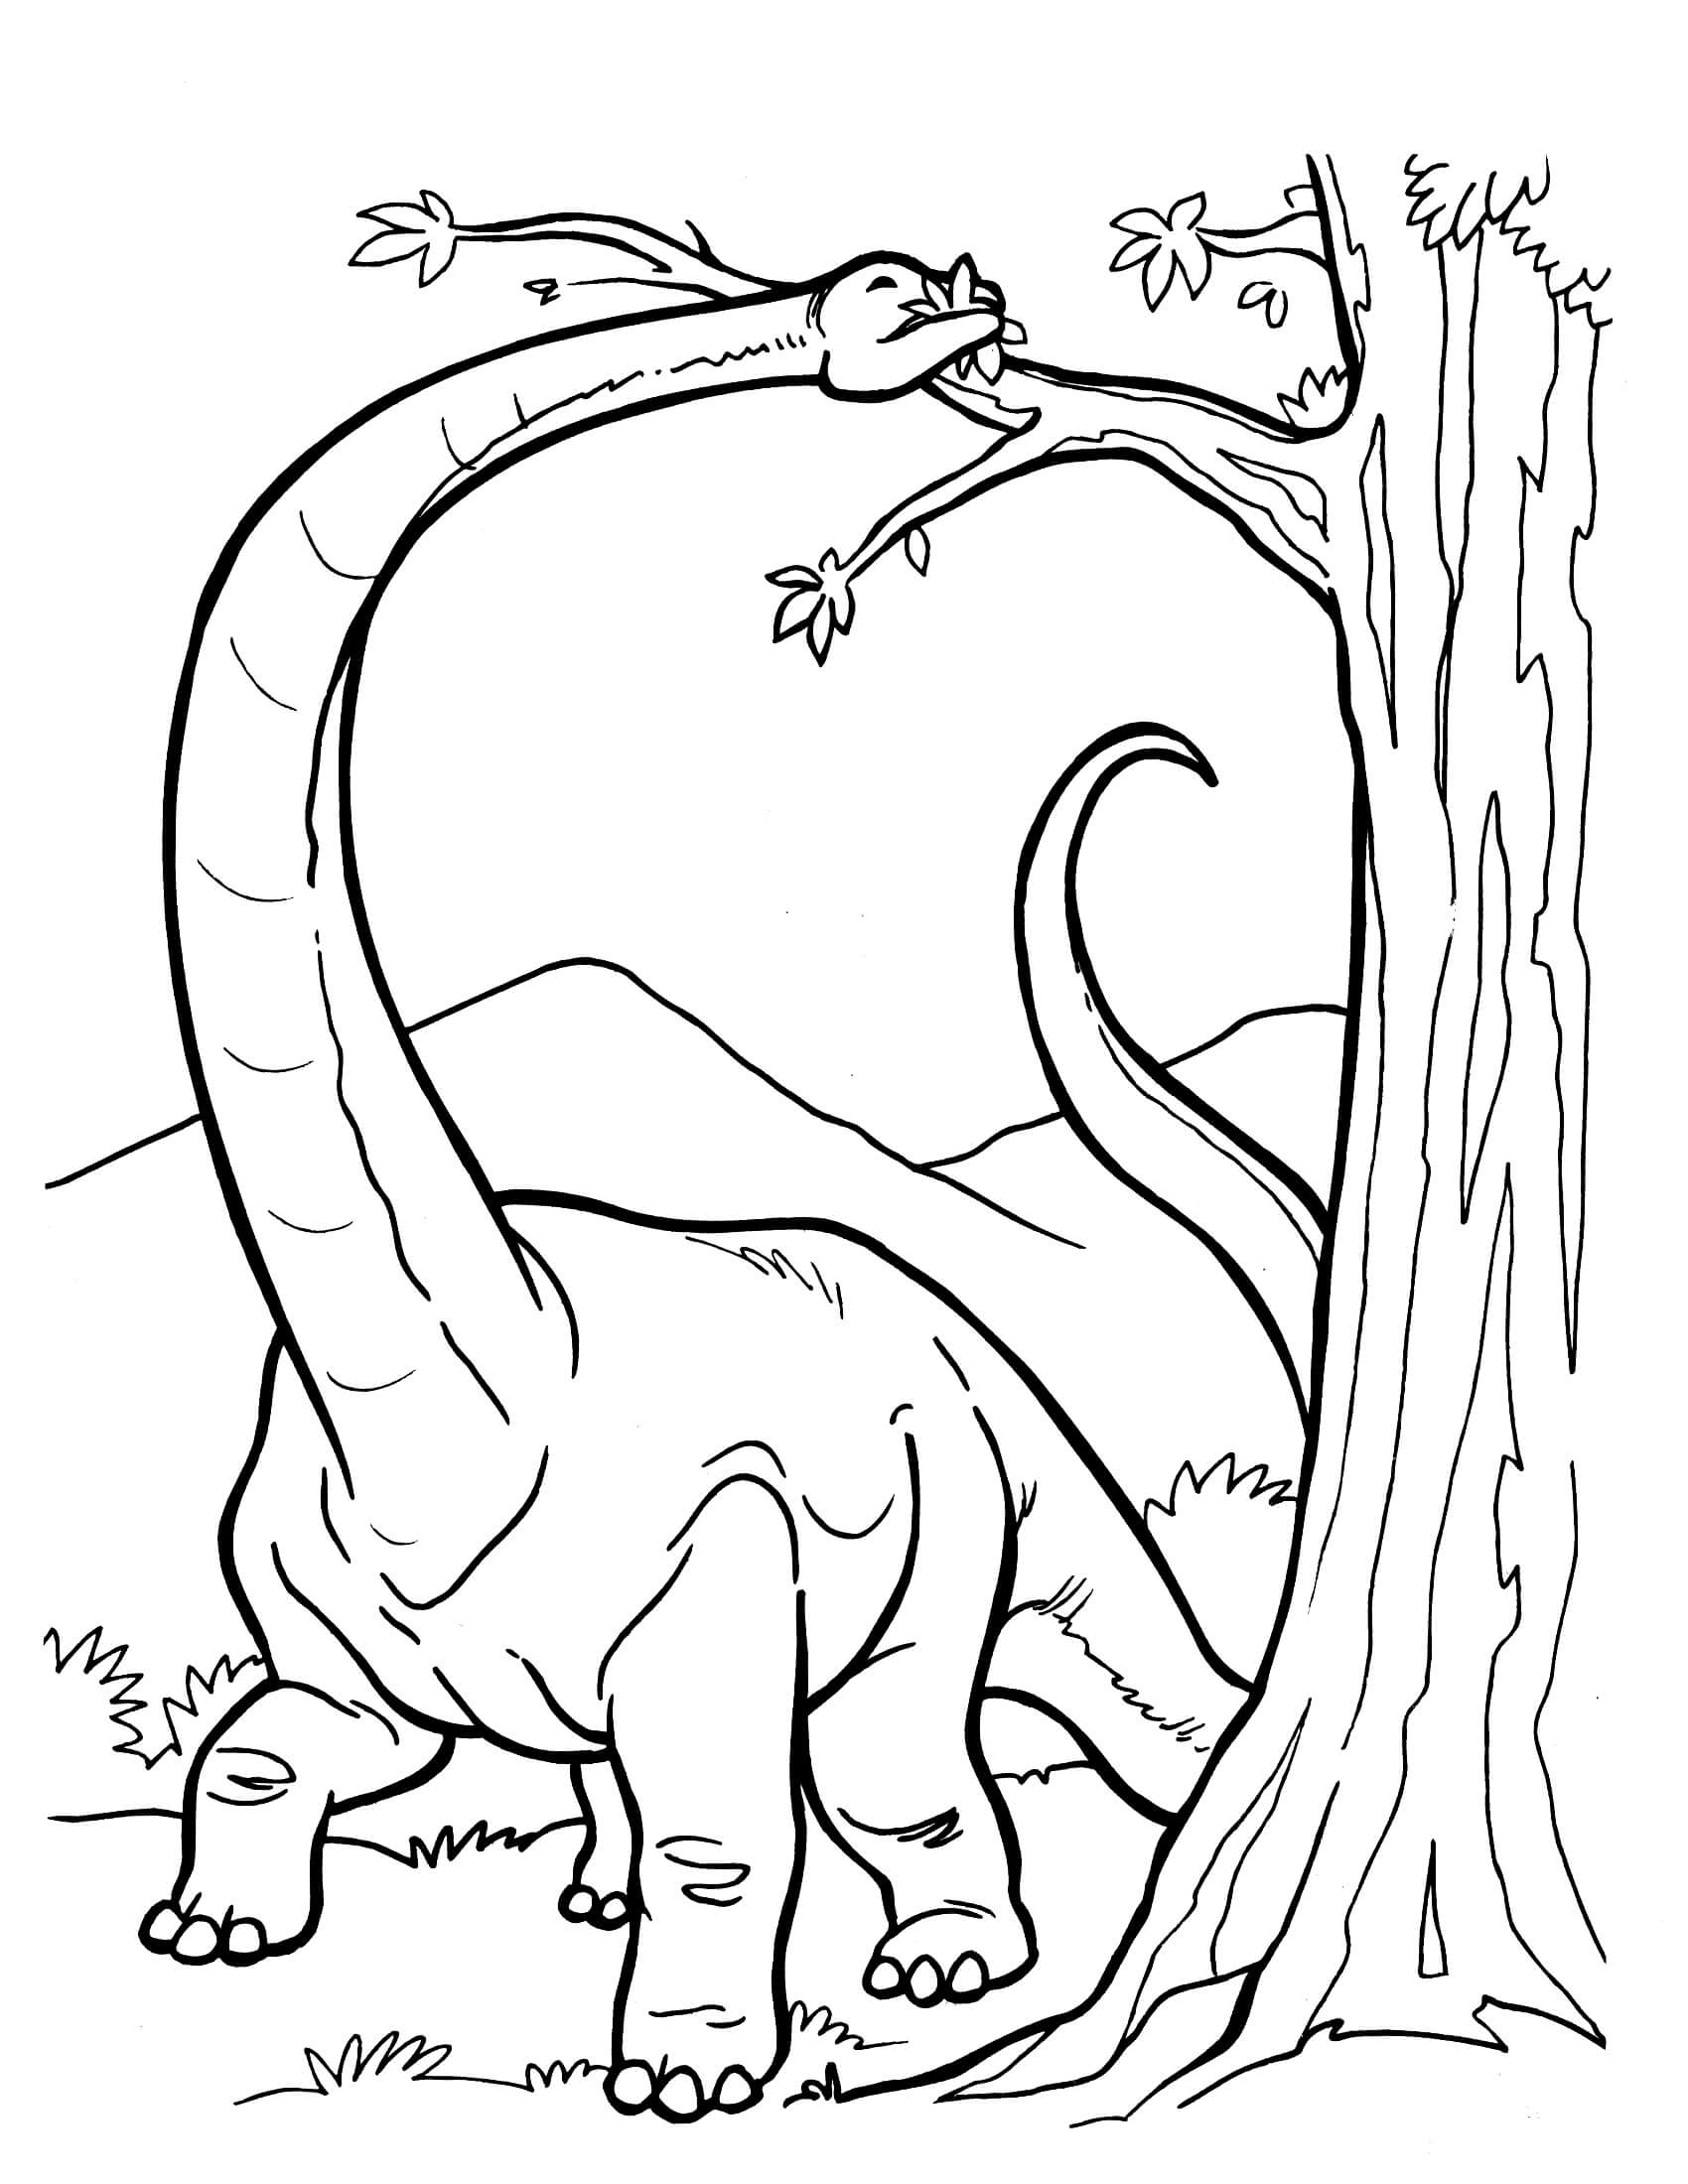 colouring in dinosaurs coloring pages dinosaur free printable coloring pages dinosaurs colouring in